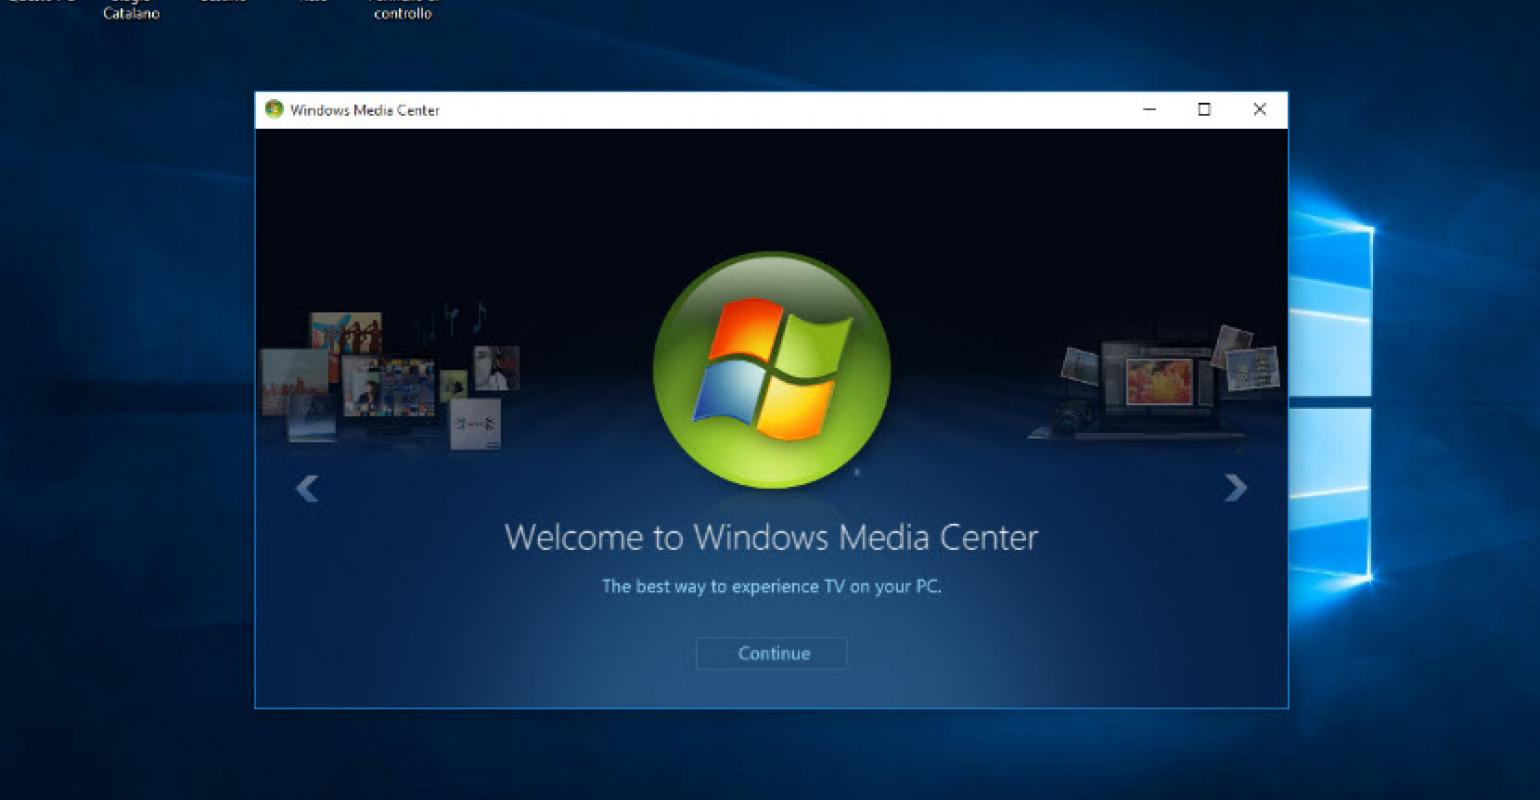 Getting Windows Media Center to Work with Windows 10 | IT Pro